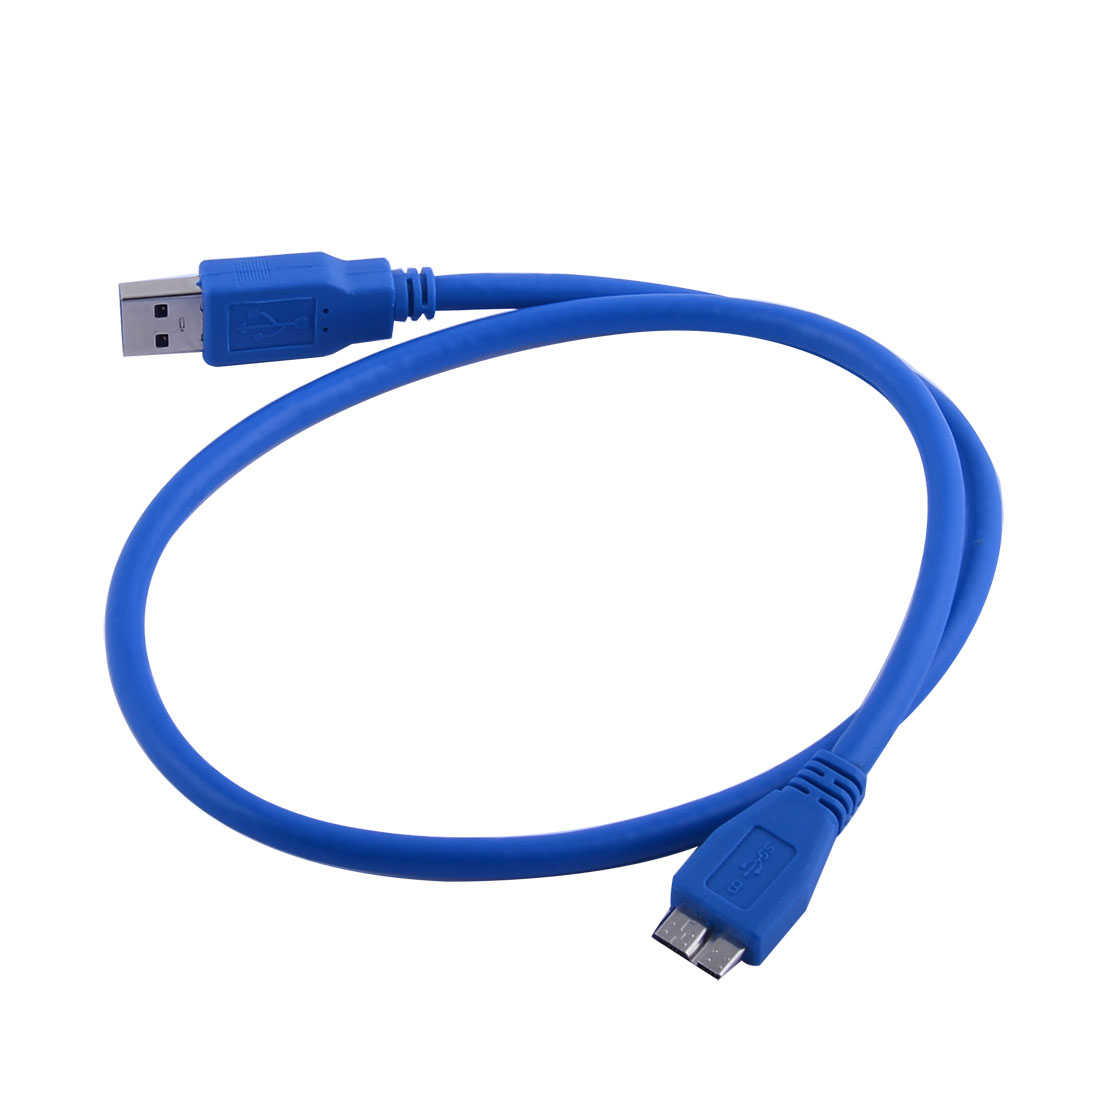 Computer USB 3.0 Type A Male to Micro B Male Computer Cable Blue 63cm